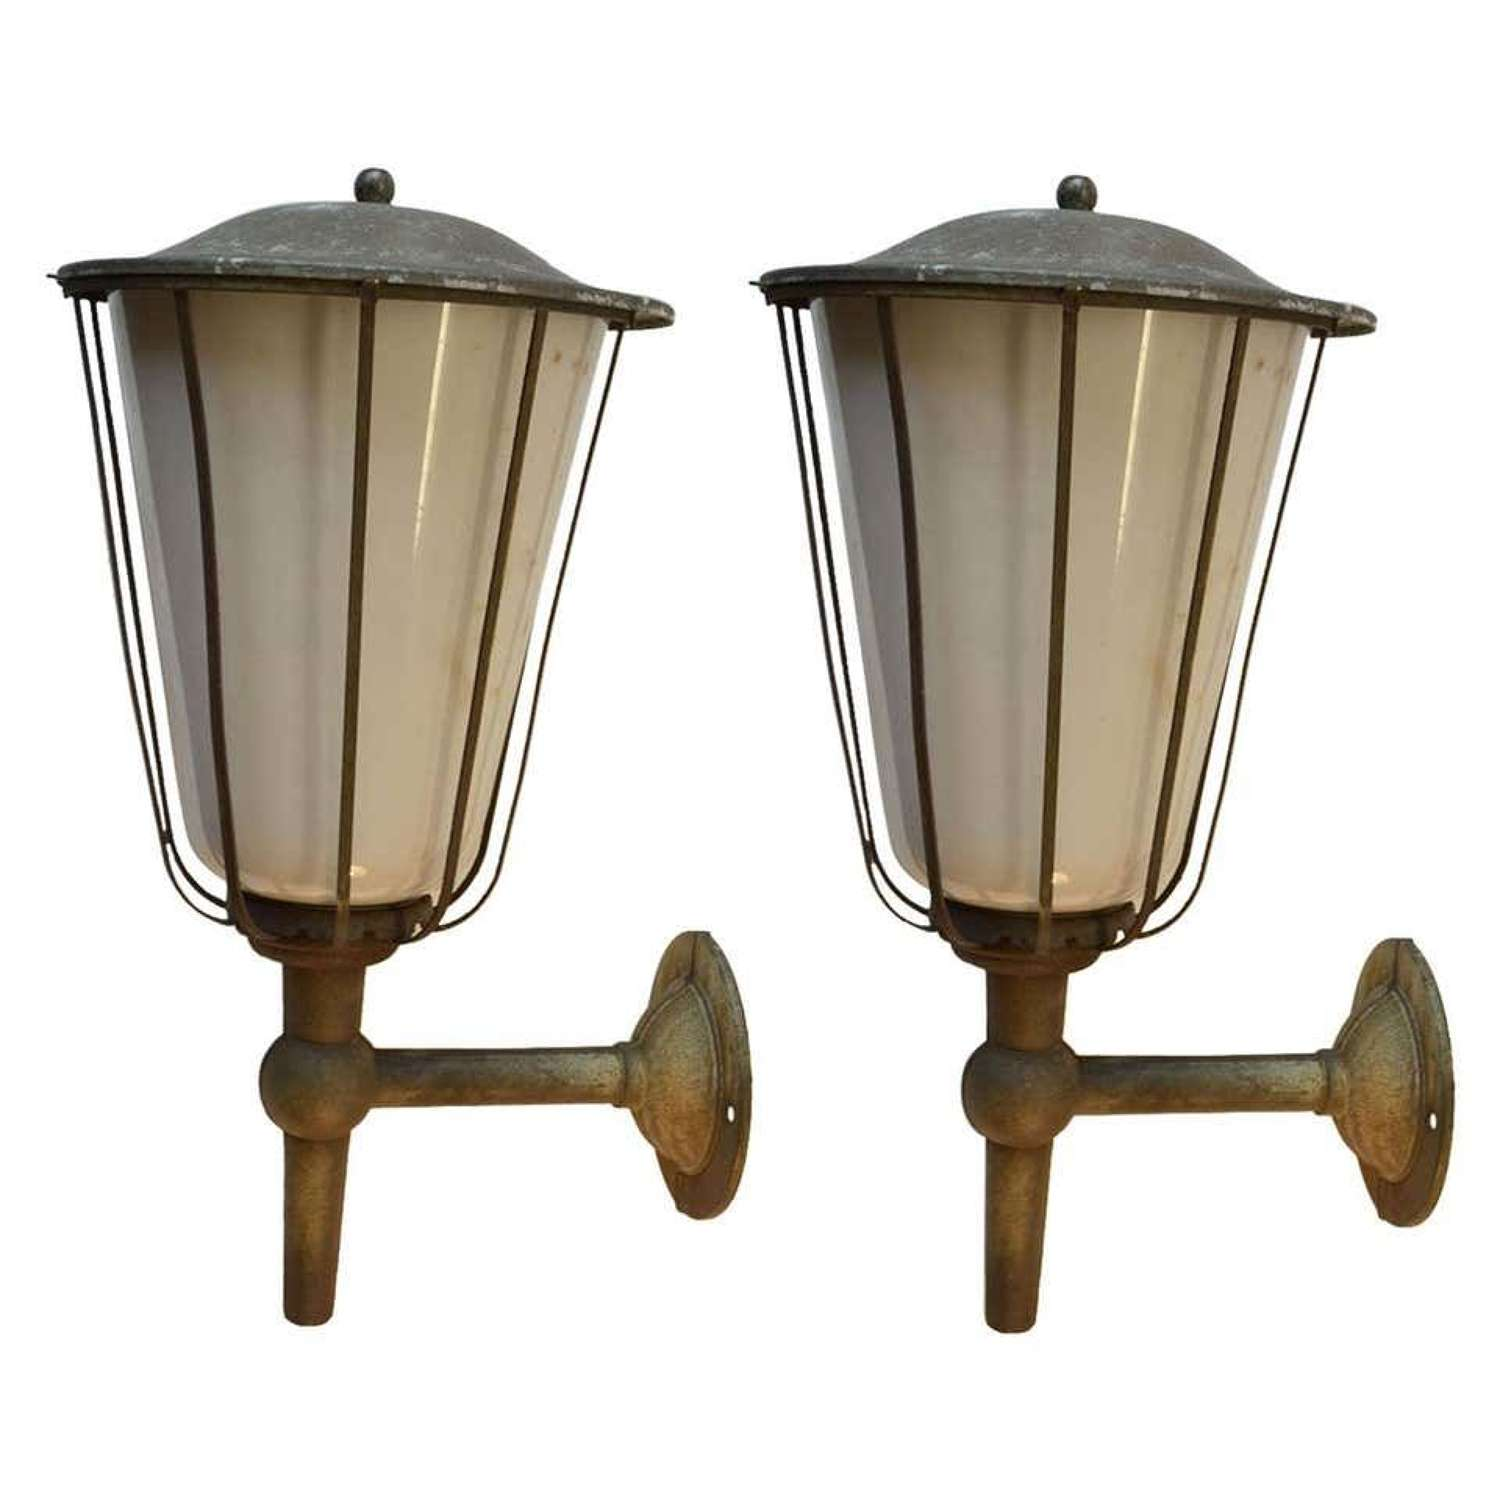 Pair of Large Outdoor Lanterns, Early 20th Century